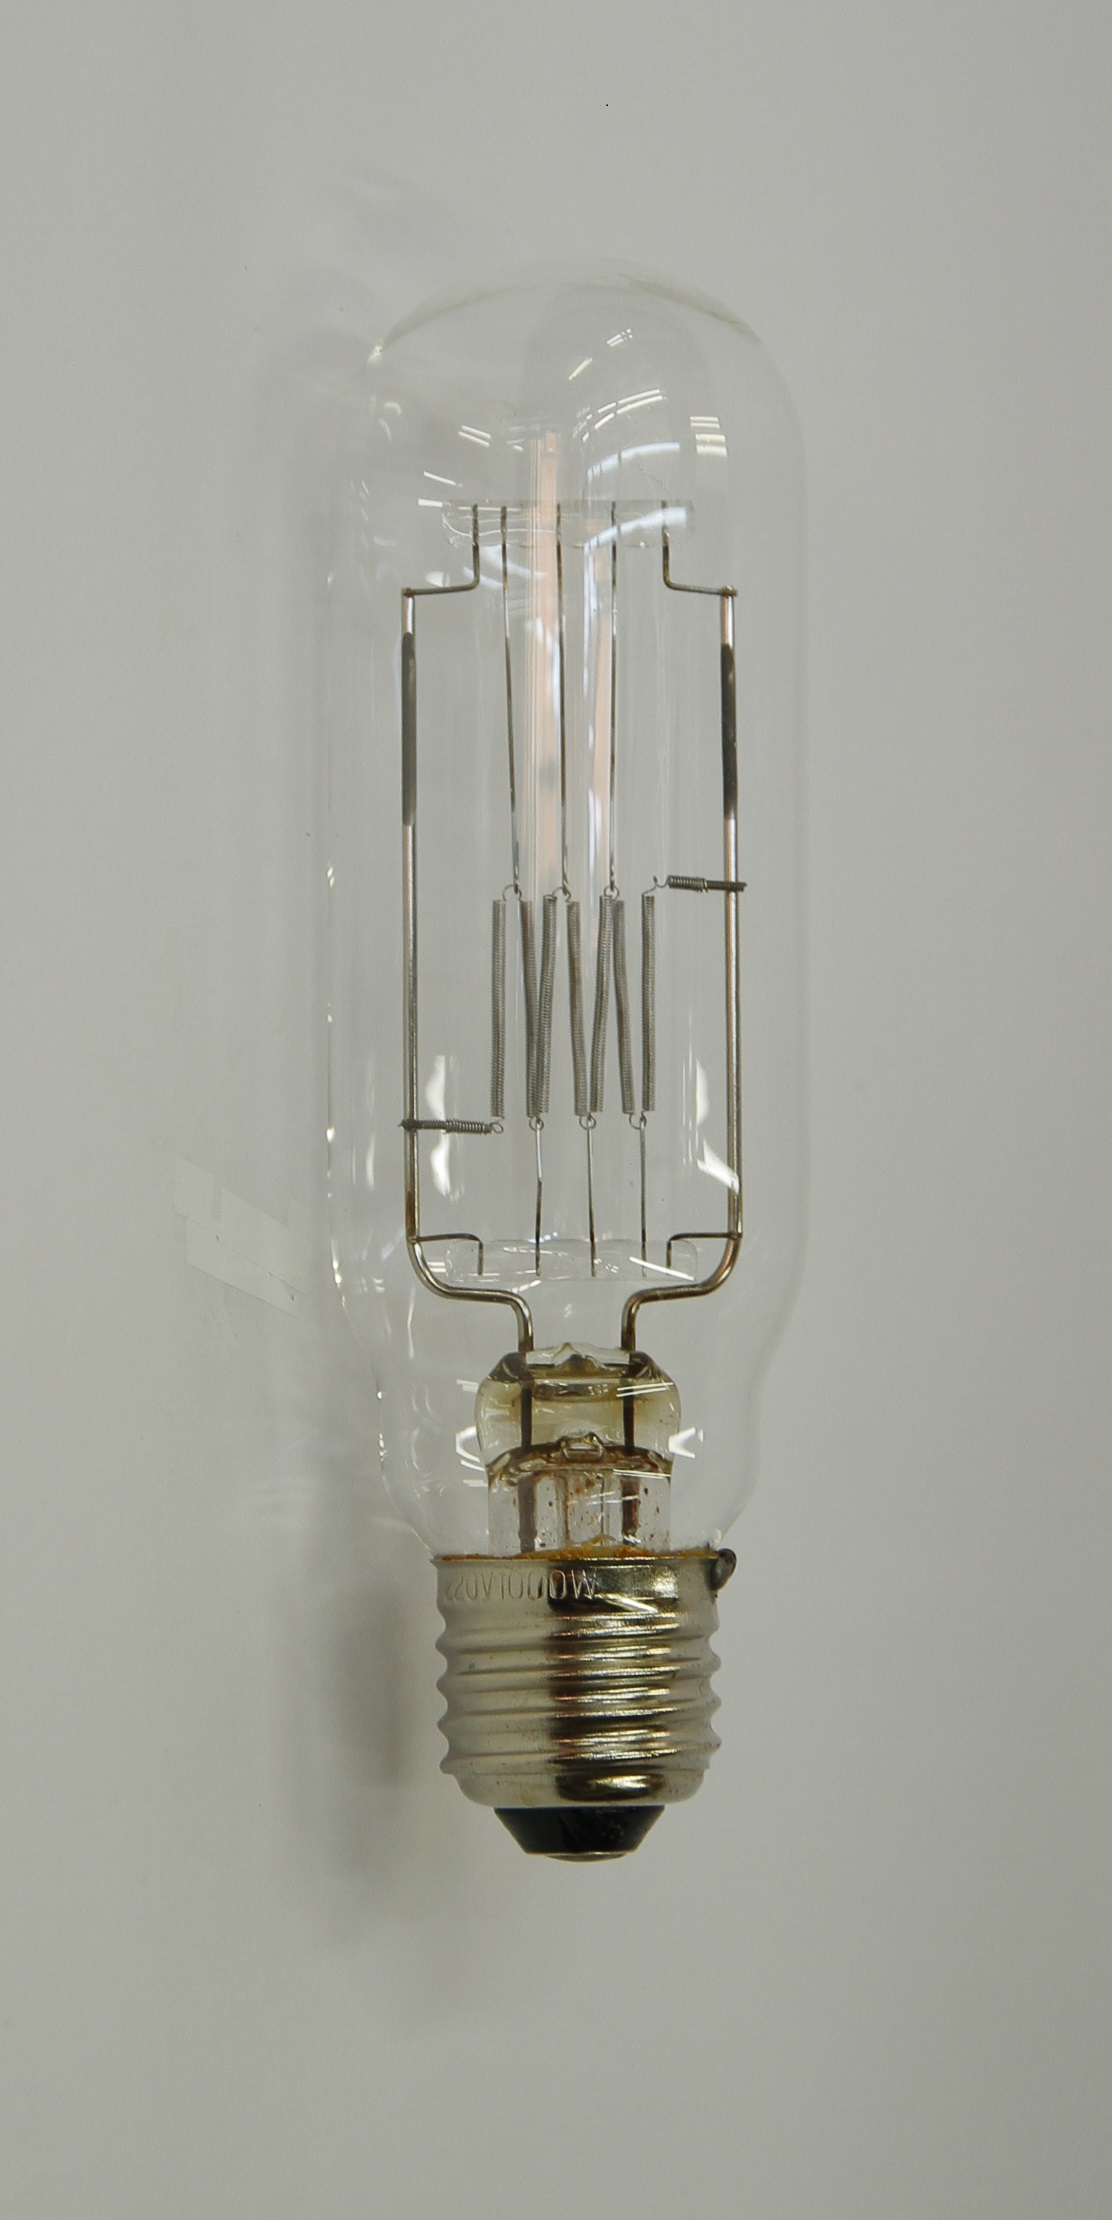 gallery of distributor lamp xl osram sony exclusive canadian and lamps tvparts philips awesome idea replacement